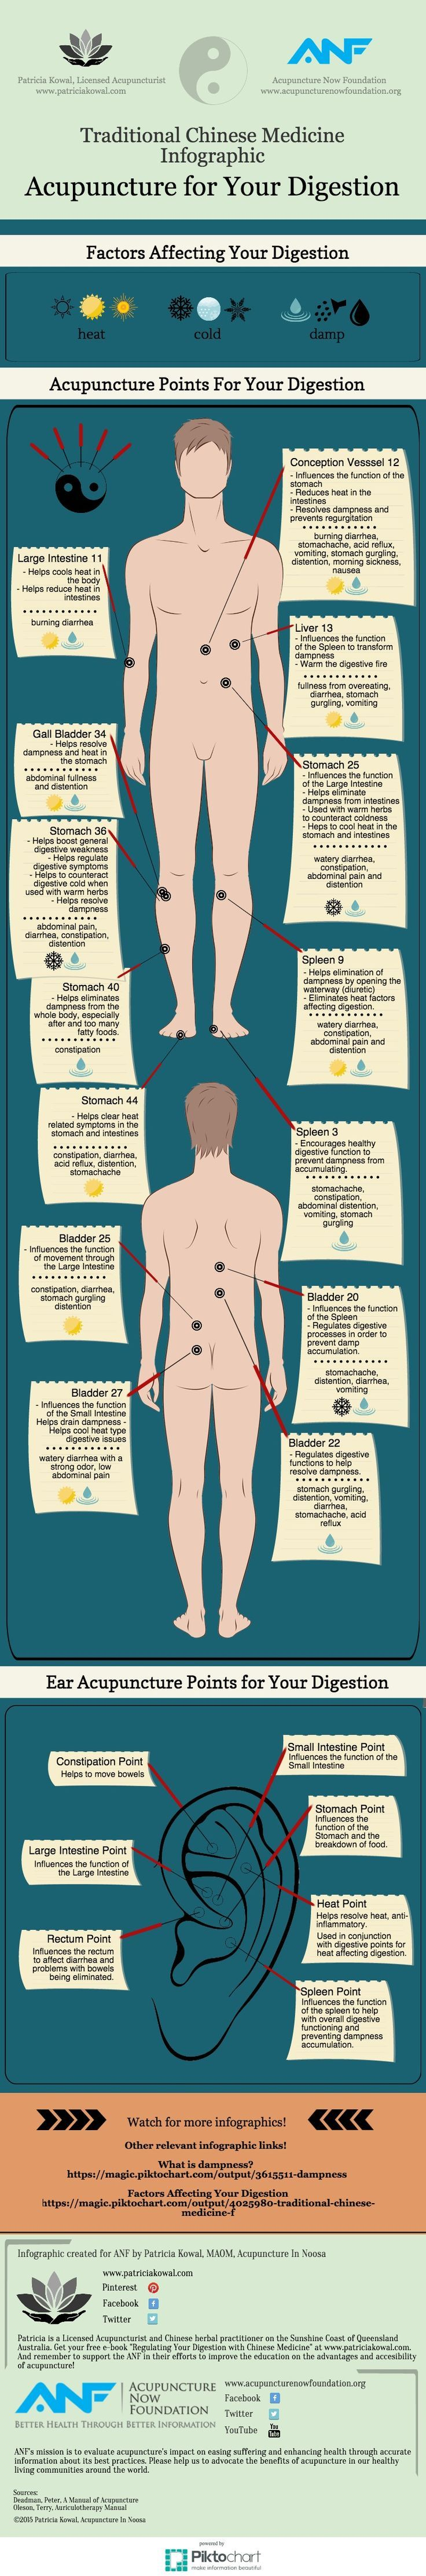 #Acupuncture for #Digestion Chart – #TCM : Here is a rather informative infographic detailing some of the factors affecting digestion, and the related acupuncture points according to TCM or Traditional Chinese Medicine. Acupuncture for Digestion Chart – TCM Notes : Similar to the three doshas of Ayurvedic Medicine, TCM or Traditional Chinese Medicine incorporates 3 factors […]